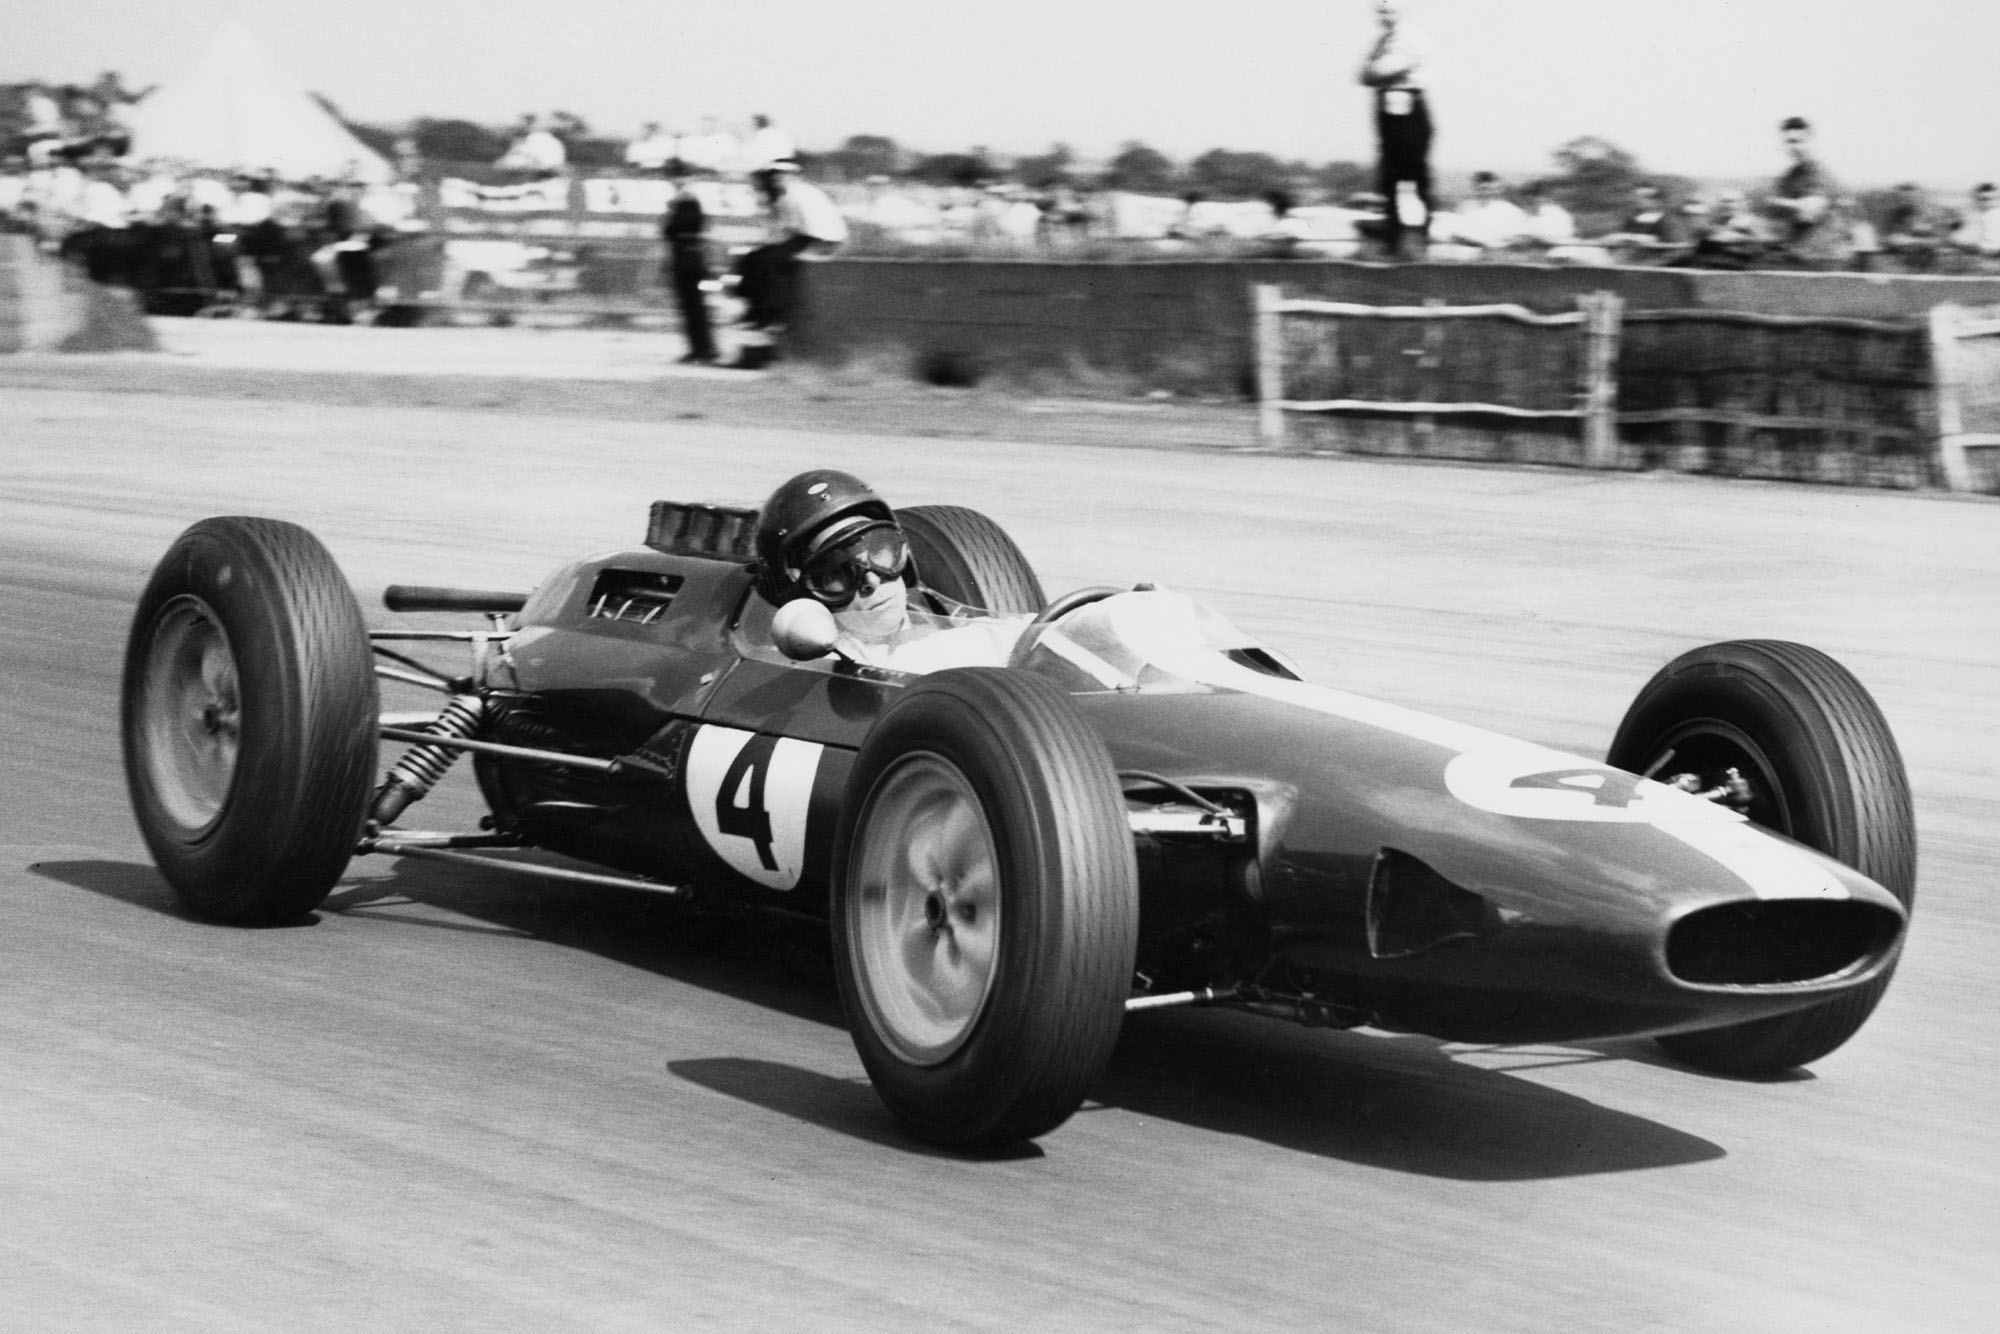 Jim Clark of Great Britain drives the #4 Team Lotus Lotus 25 Climax V8 during the British Grand Prix on 20 July 1963 at the Silverstone circuit near Towcester, United Kingdom. (Photo by Central Press Photos/Hulton Archive/Getty Images).